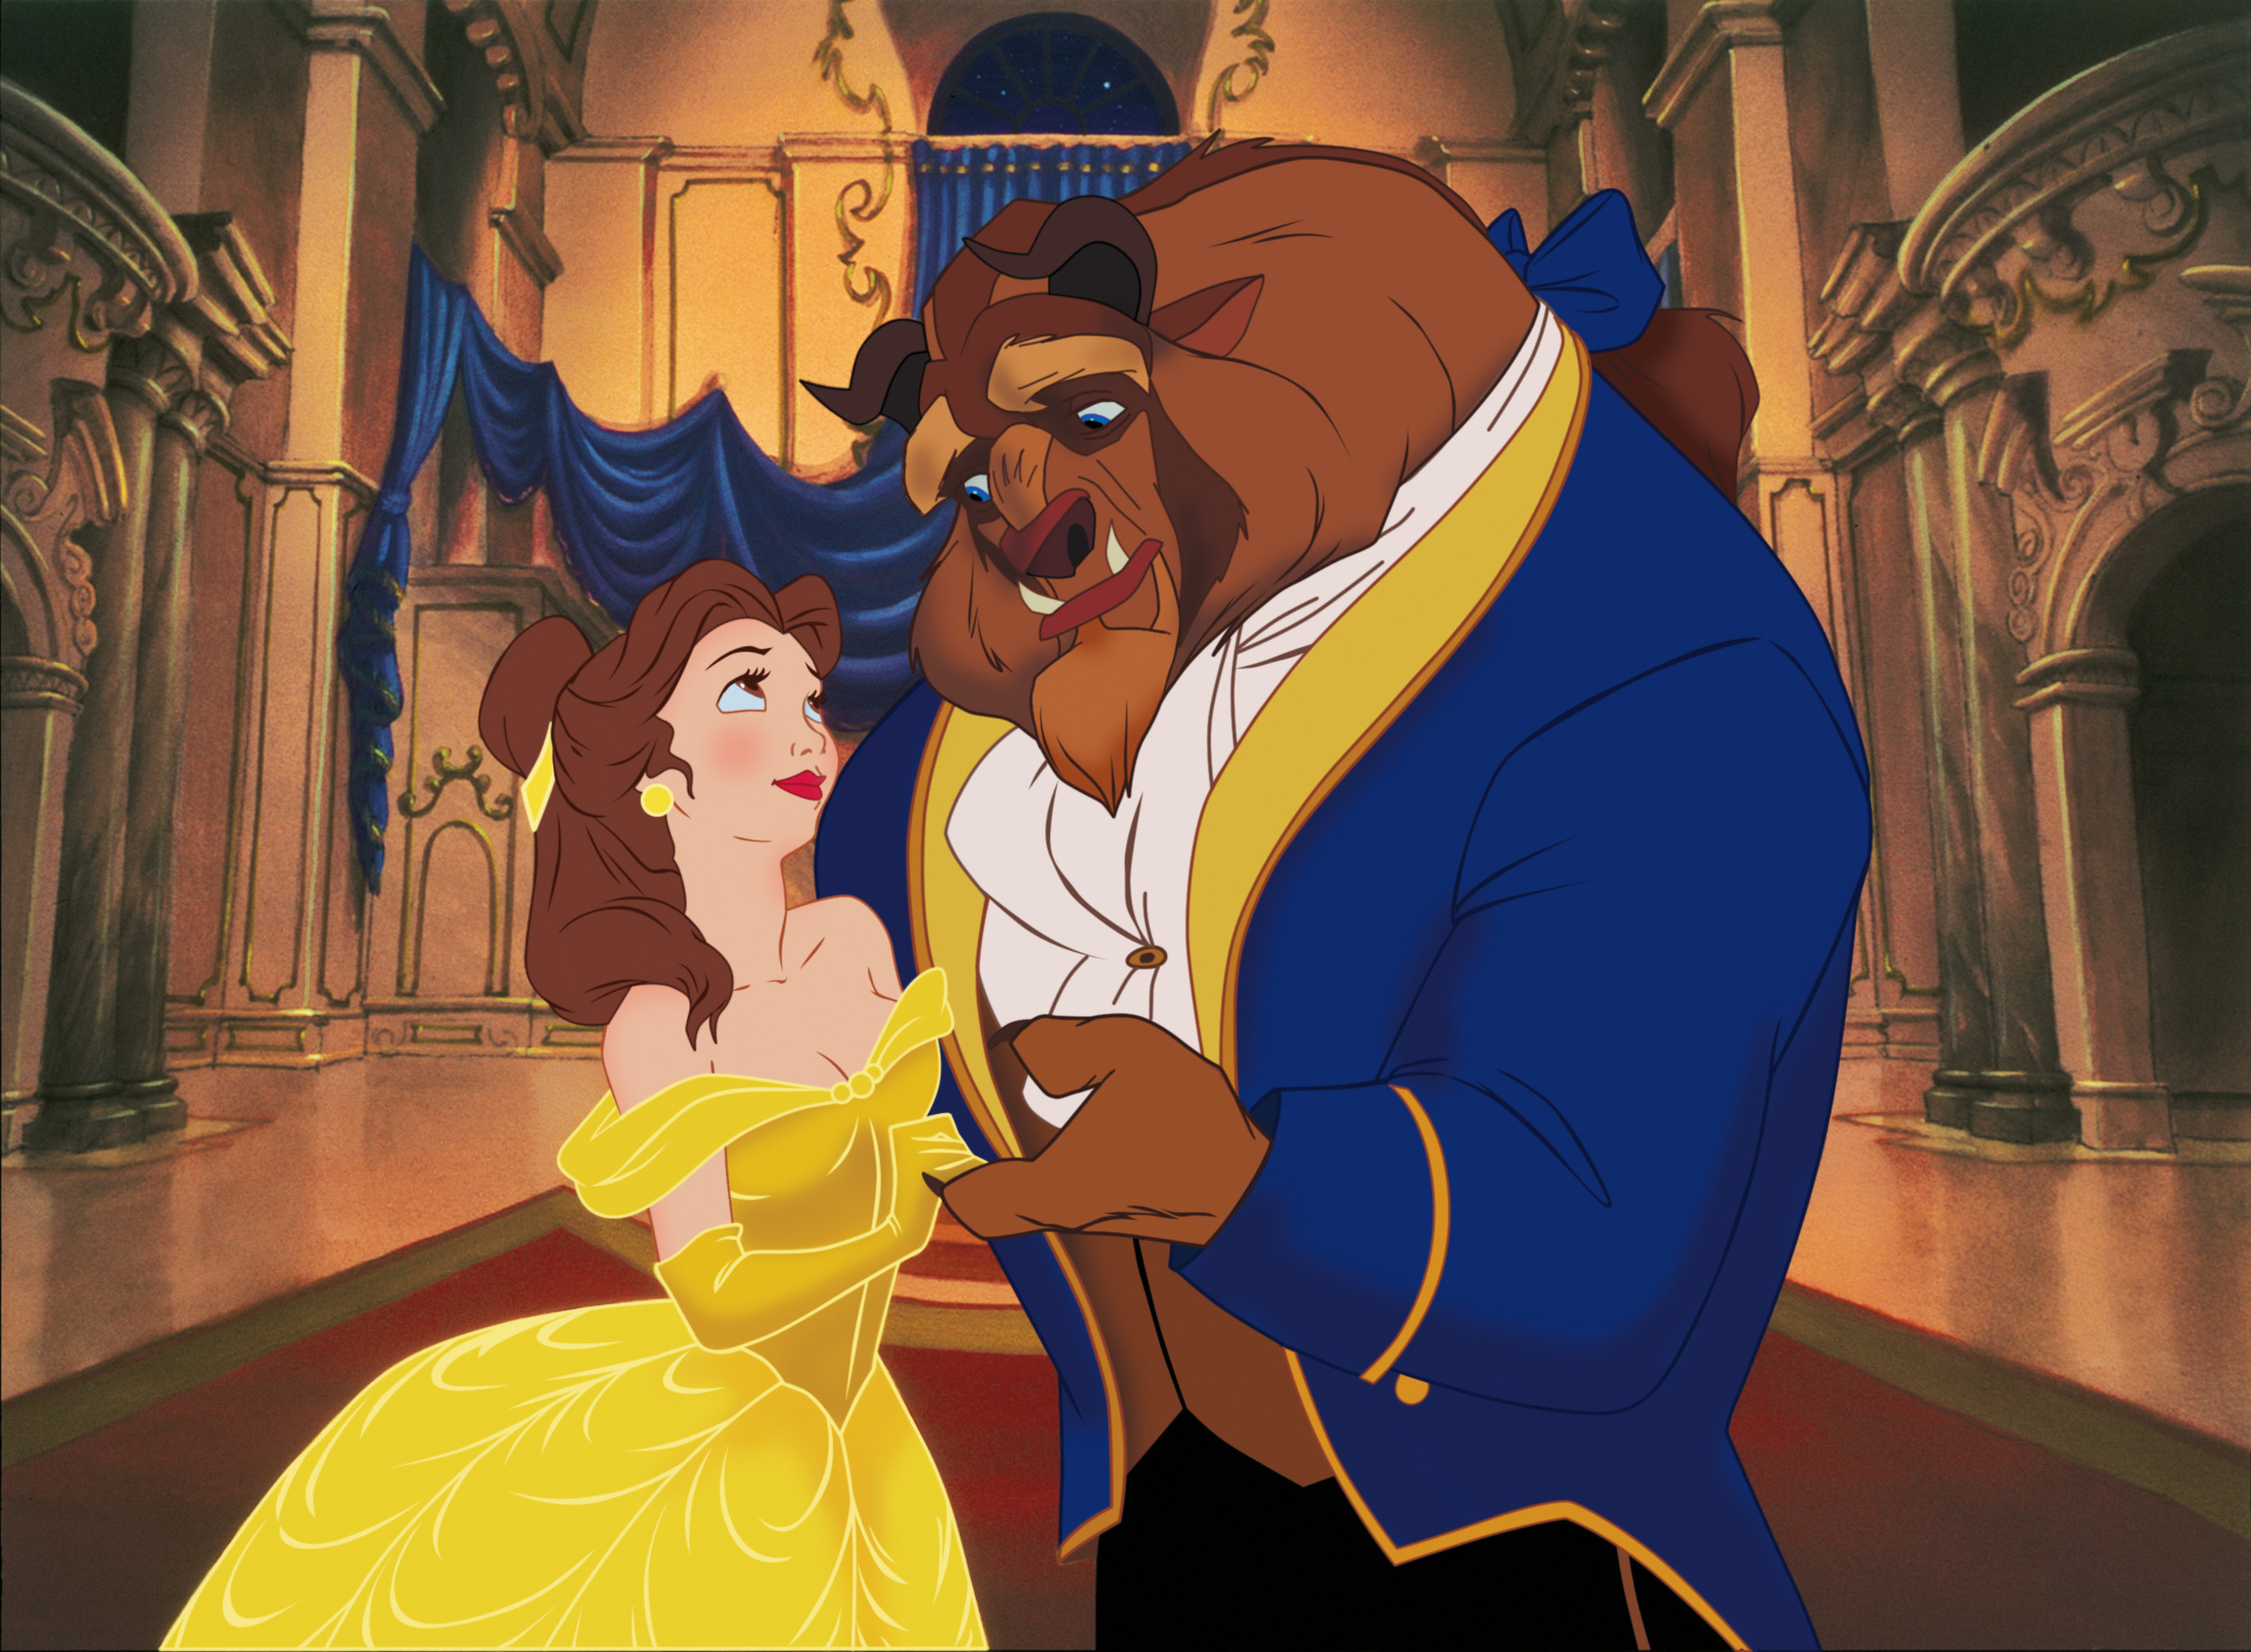 A publicity image of Belle and Beast from the ballroom scene